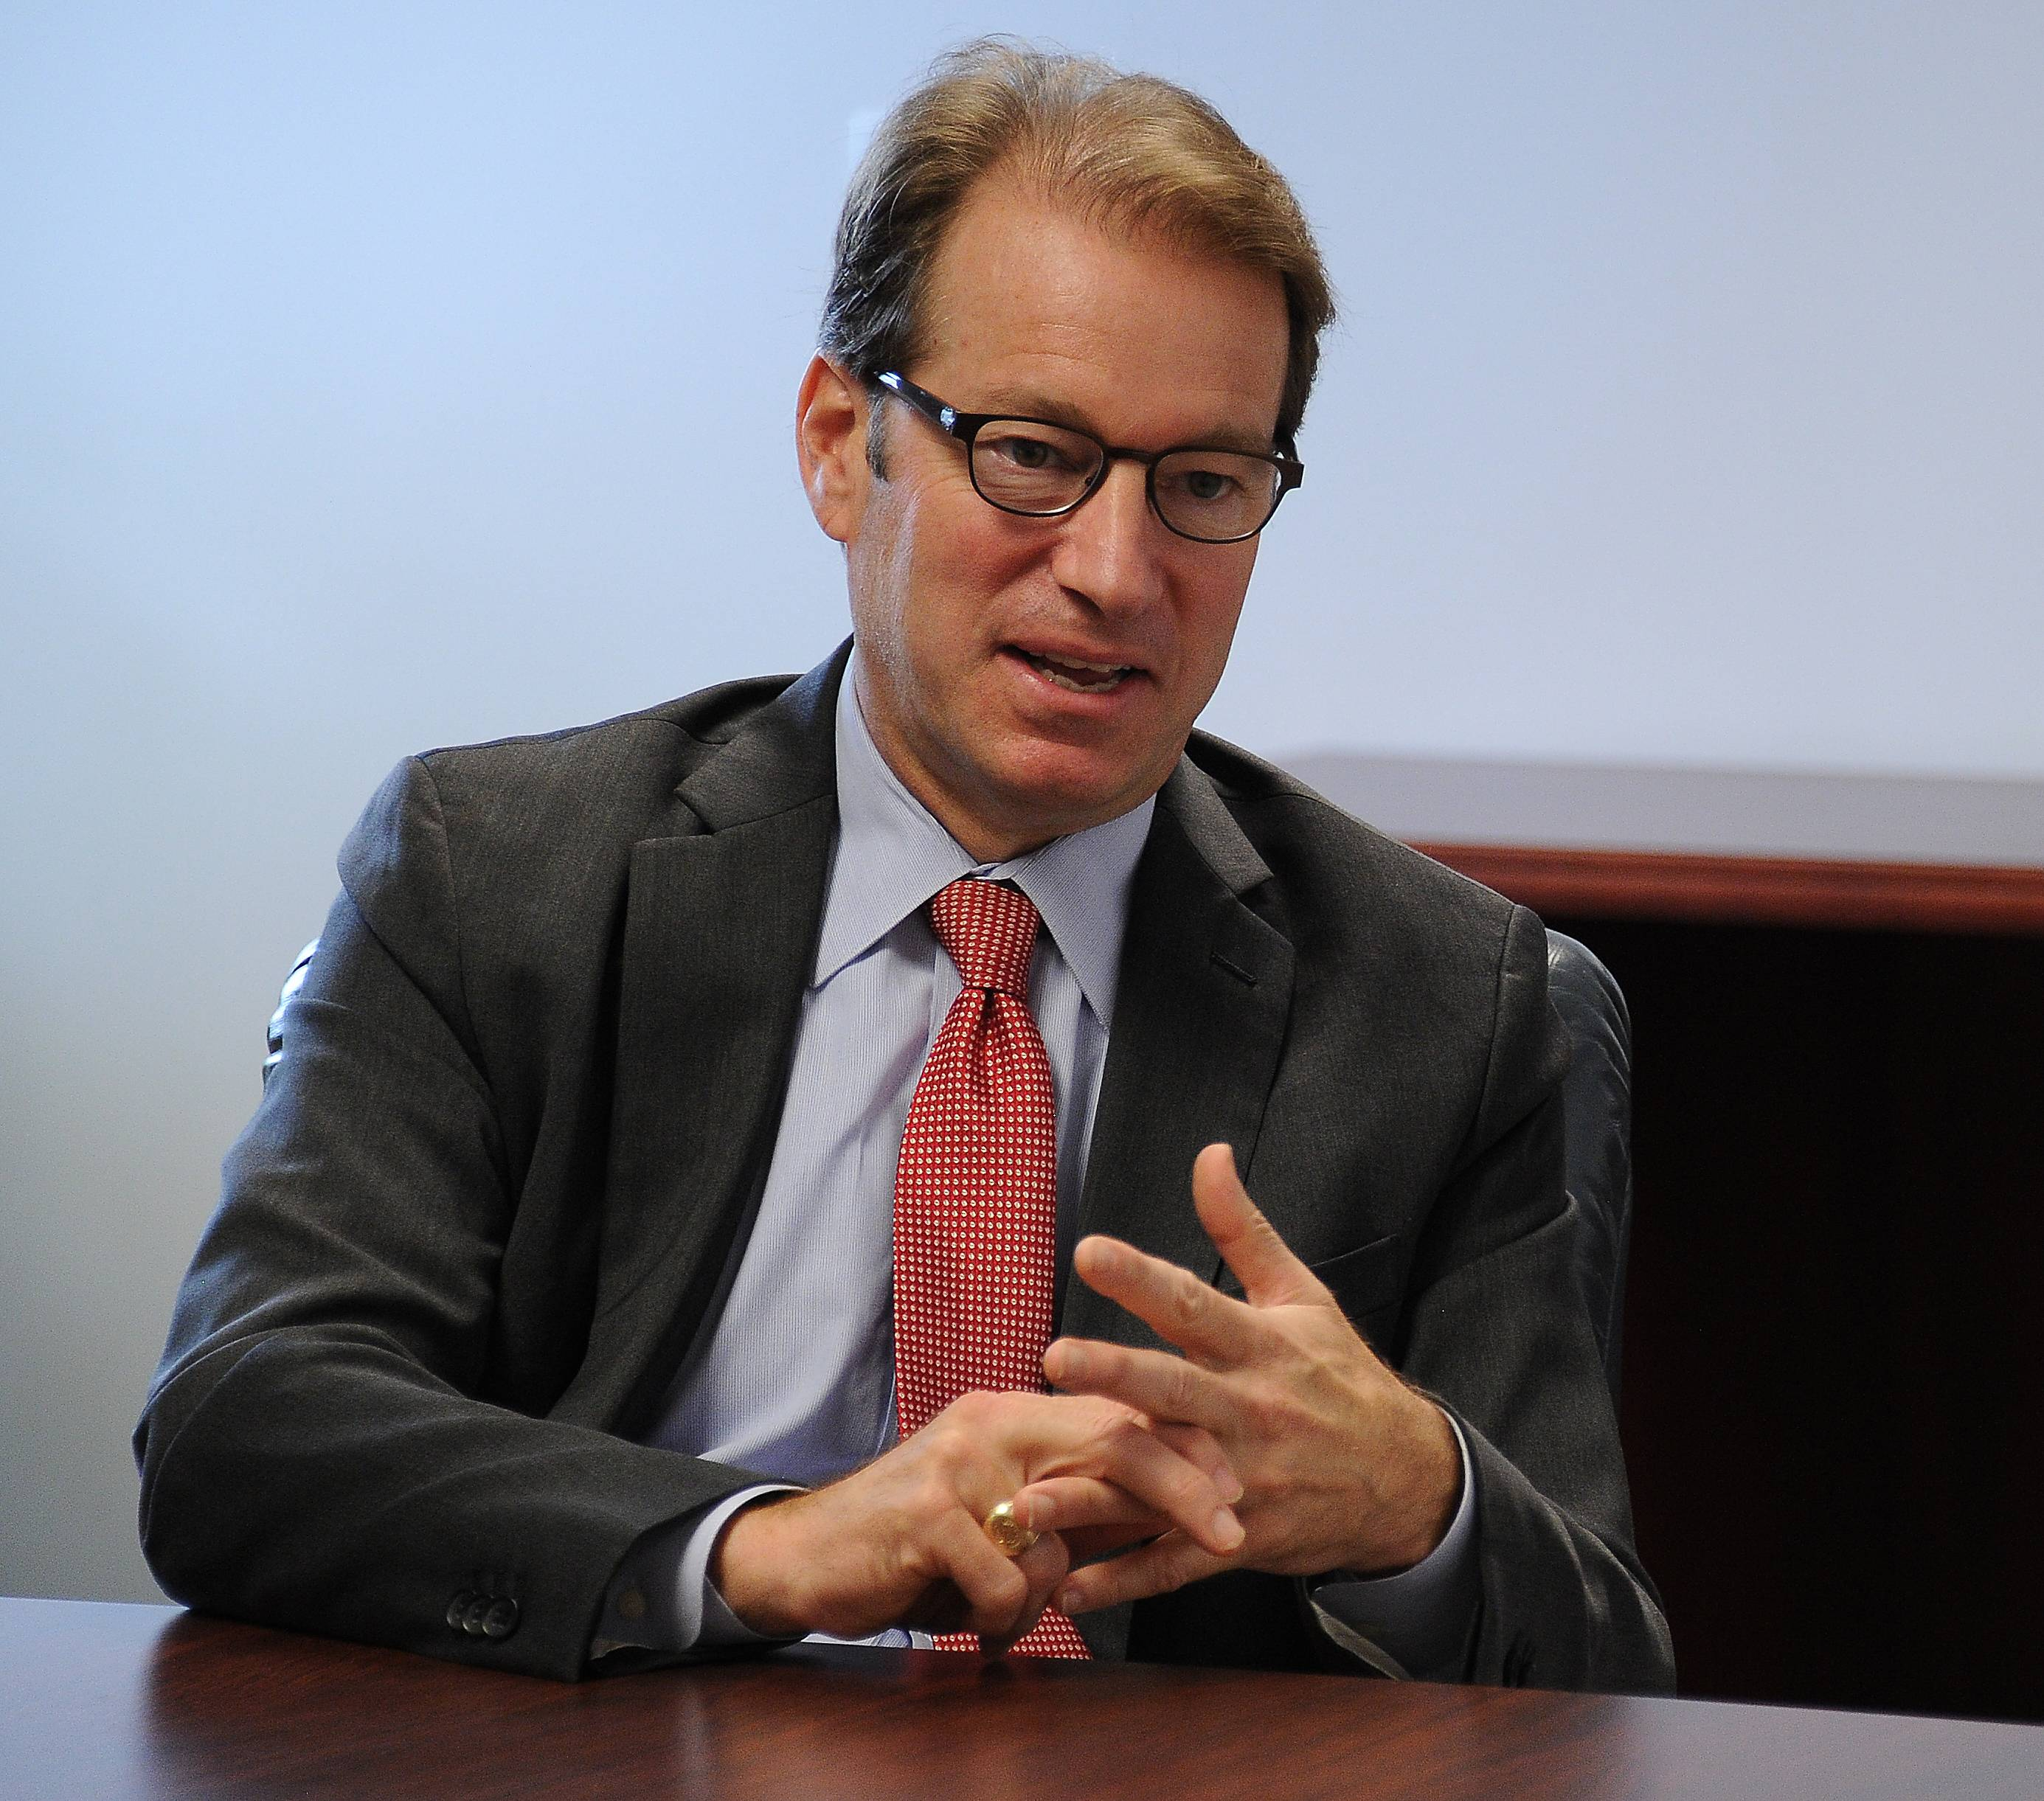 Roskam, Hultgren to skip Pence event in Rosemont, but Rauner won't